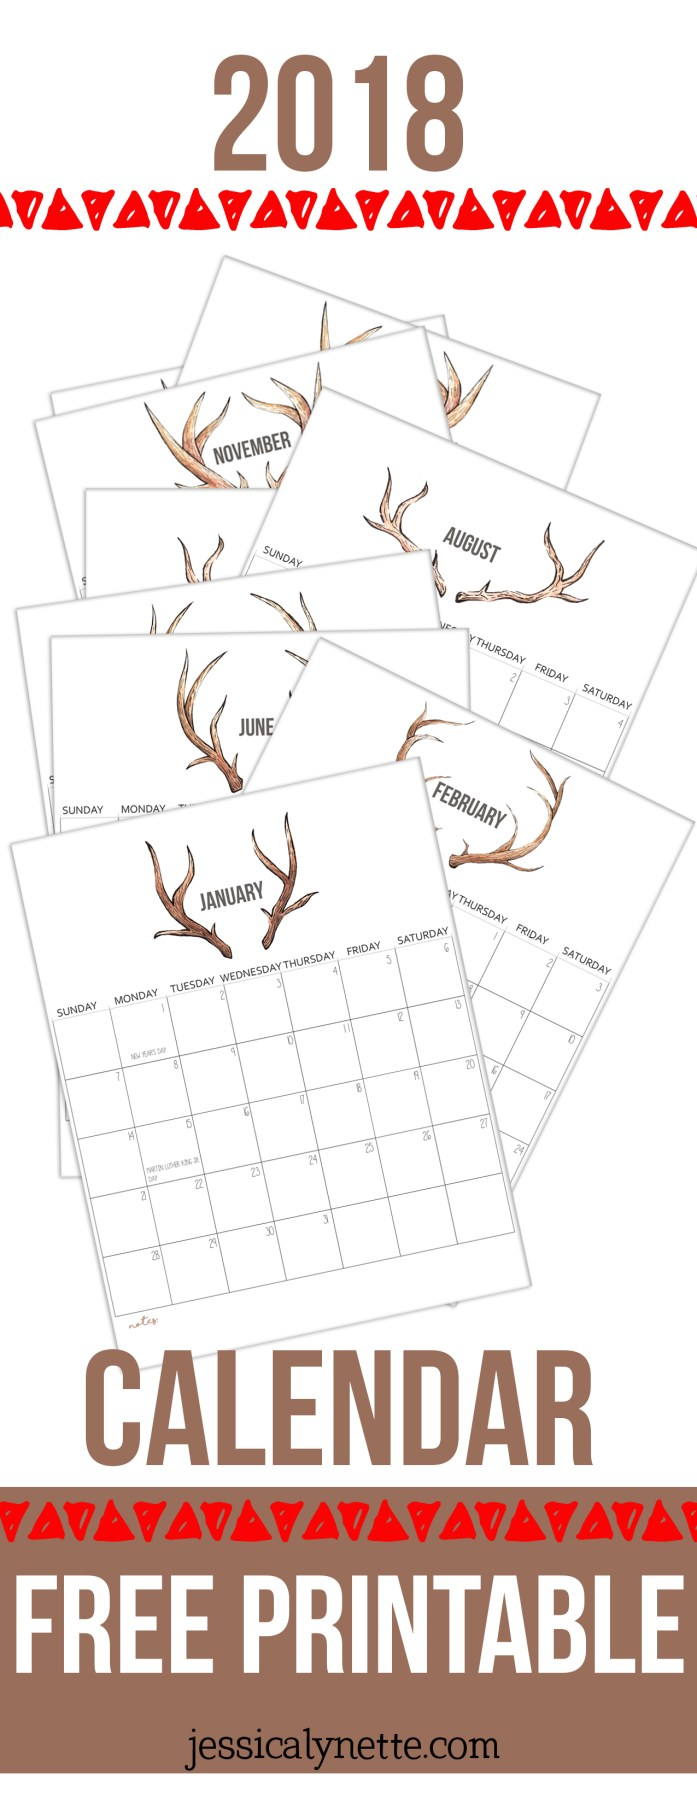 free 2018 printable calendar if i had made a homeschool planner for myself this year i would have used this printable calendar for the pages but instead i